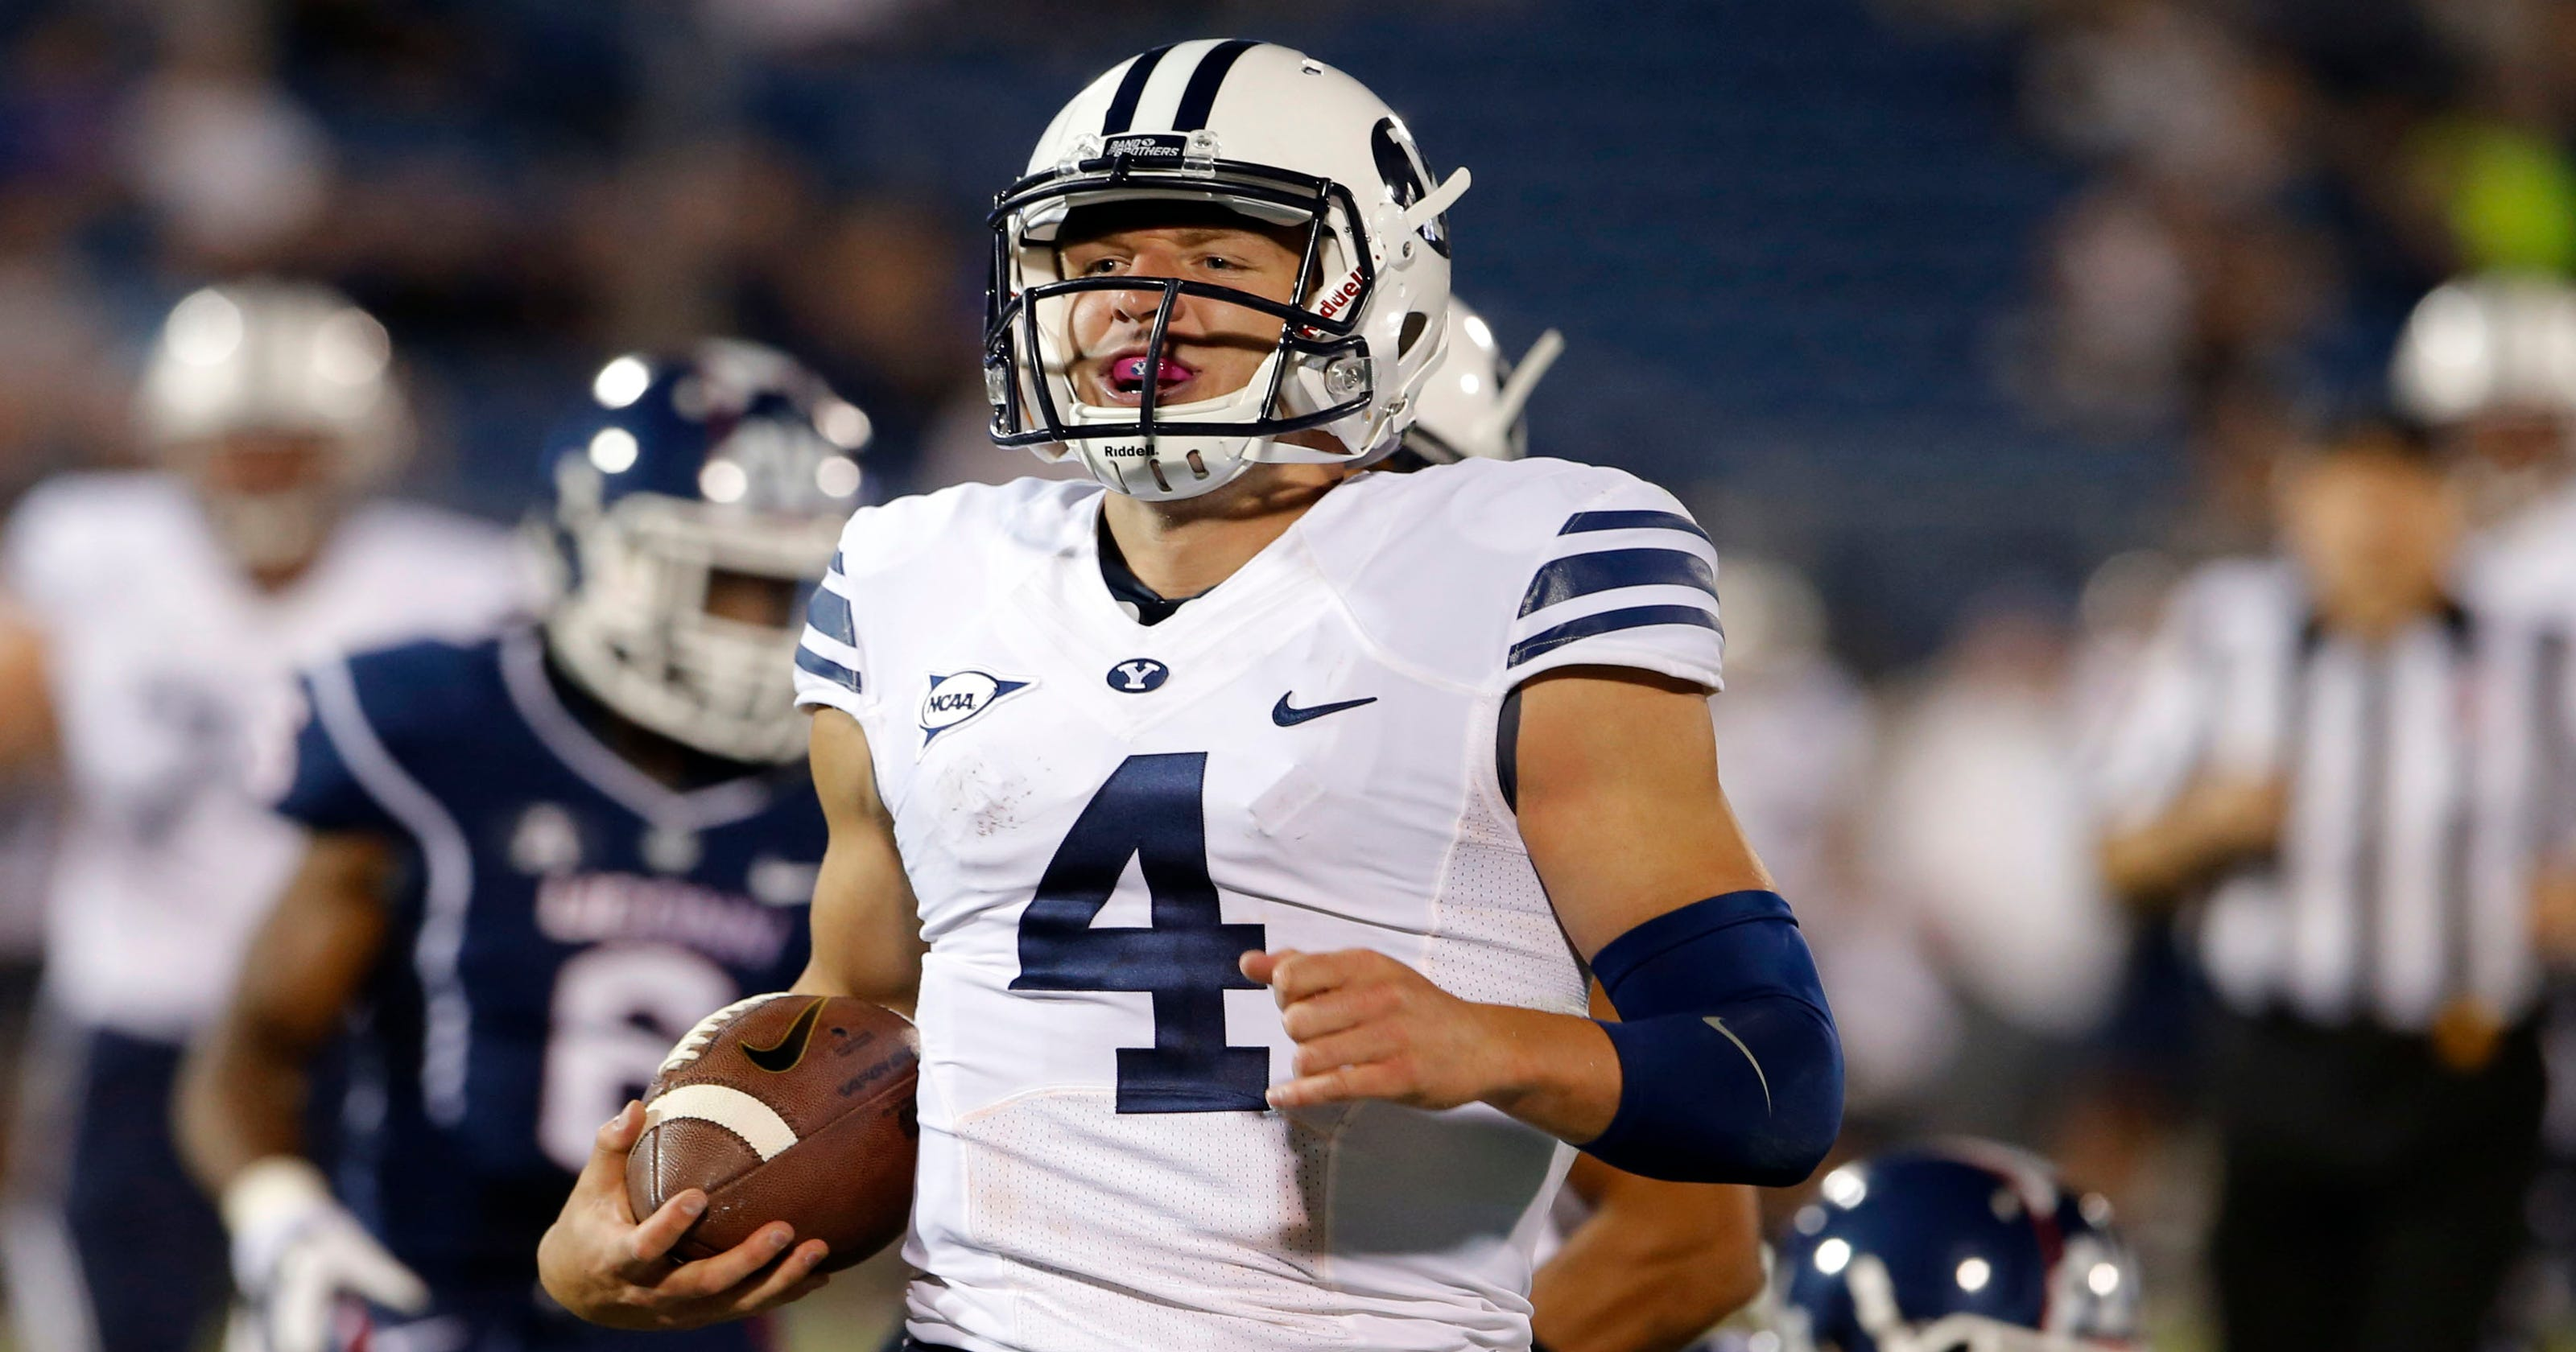 BYU's Taysom Hill understands risk and reward better than mostTaysom Hill Body